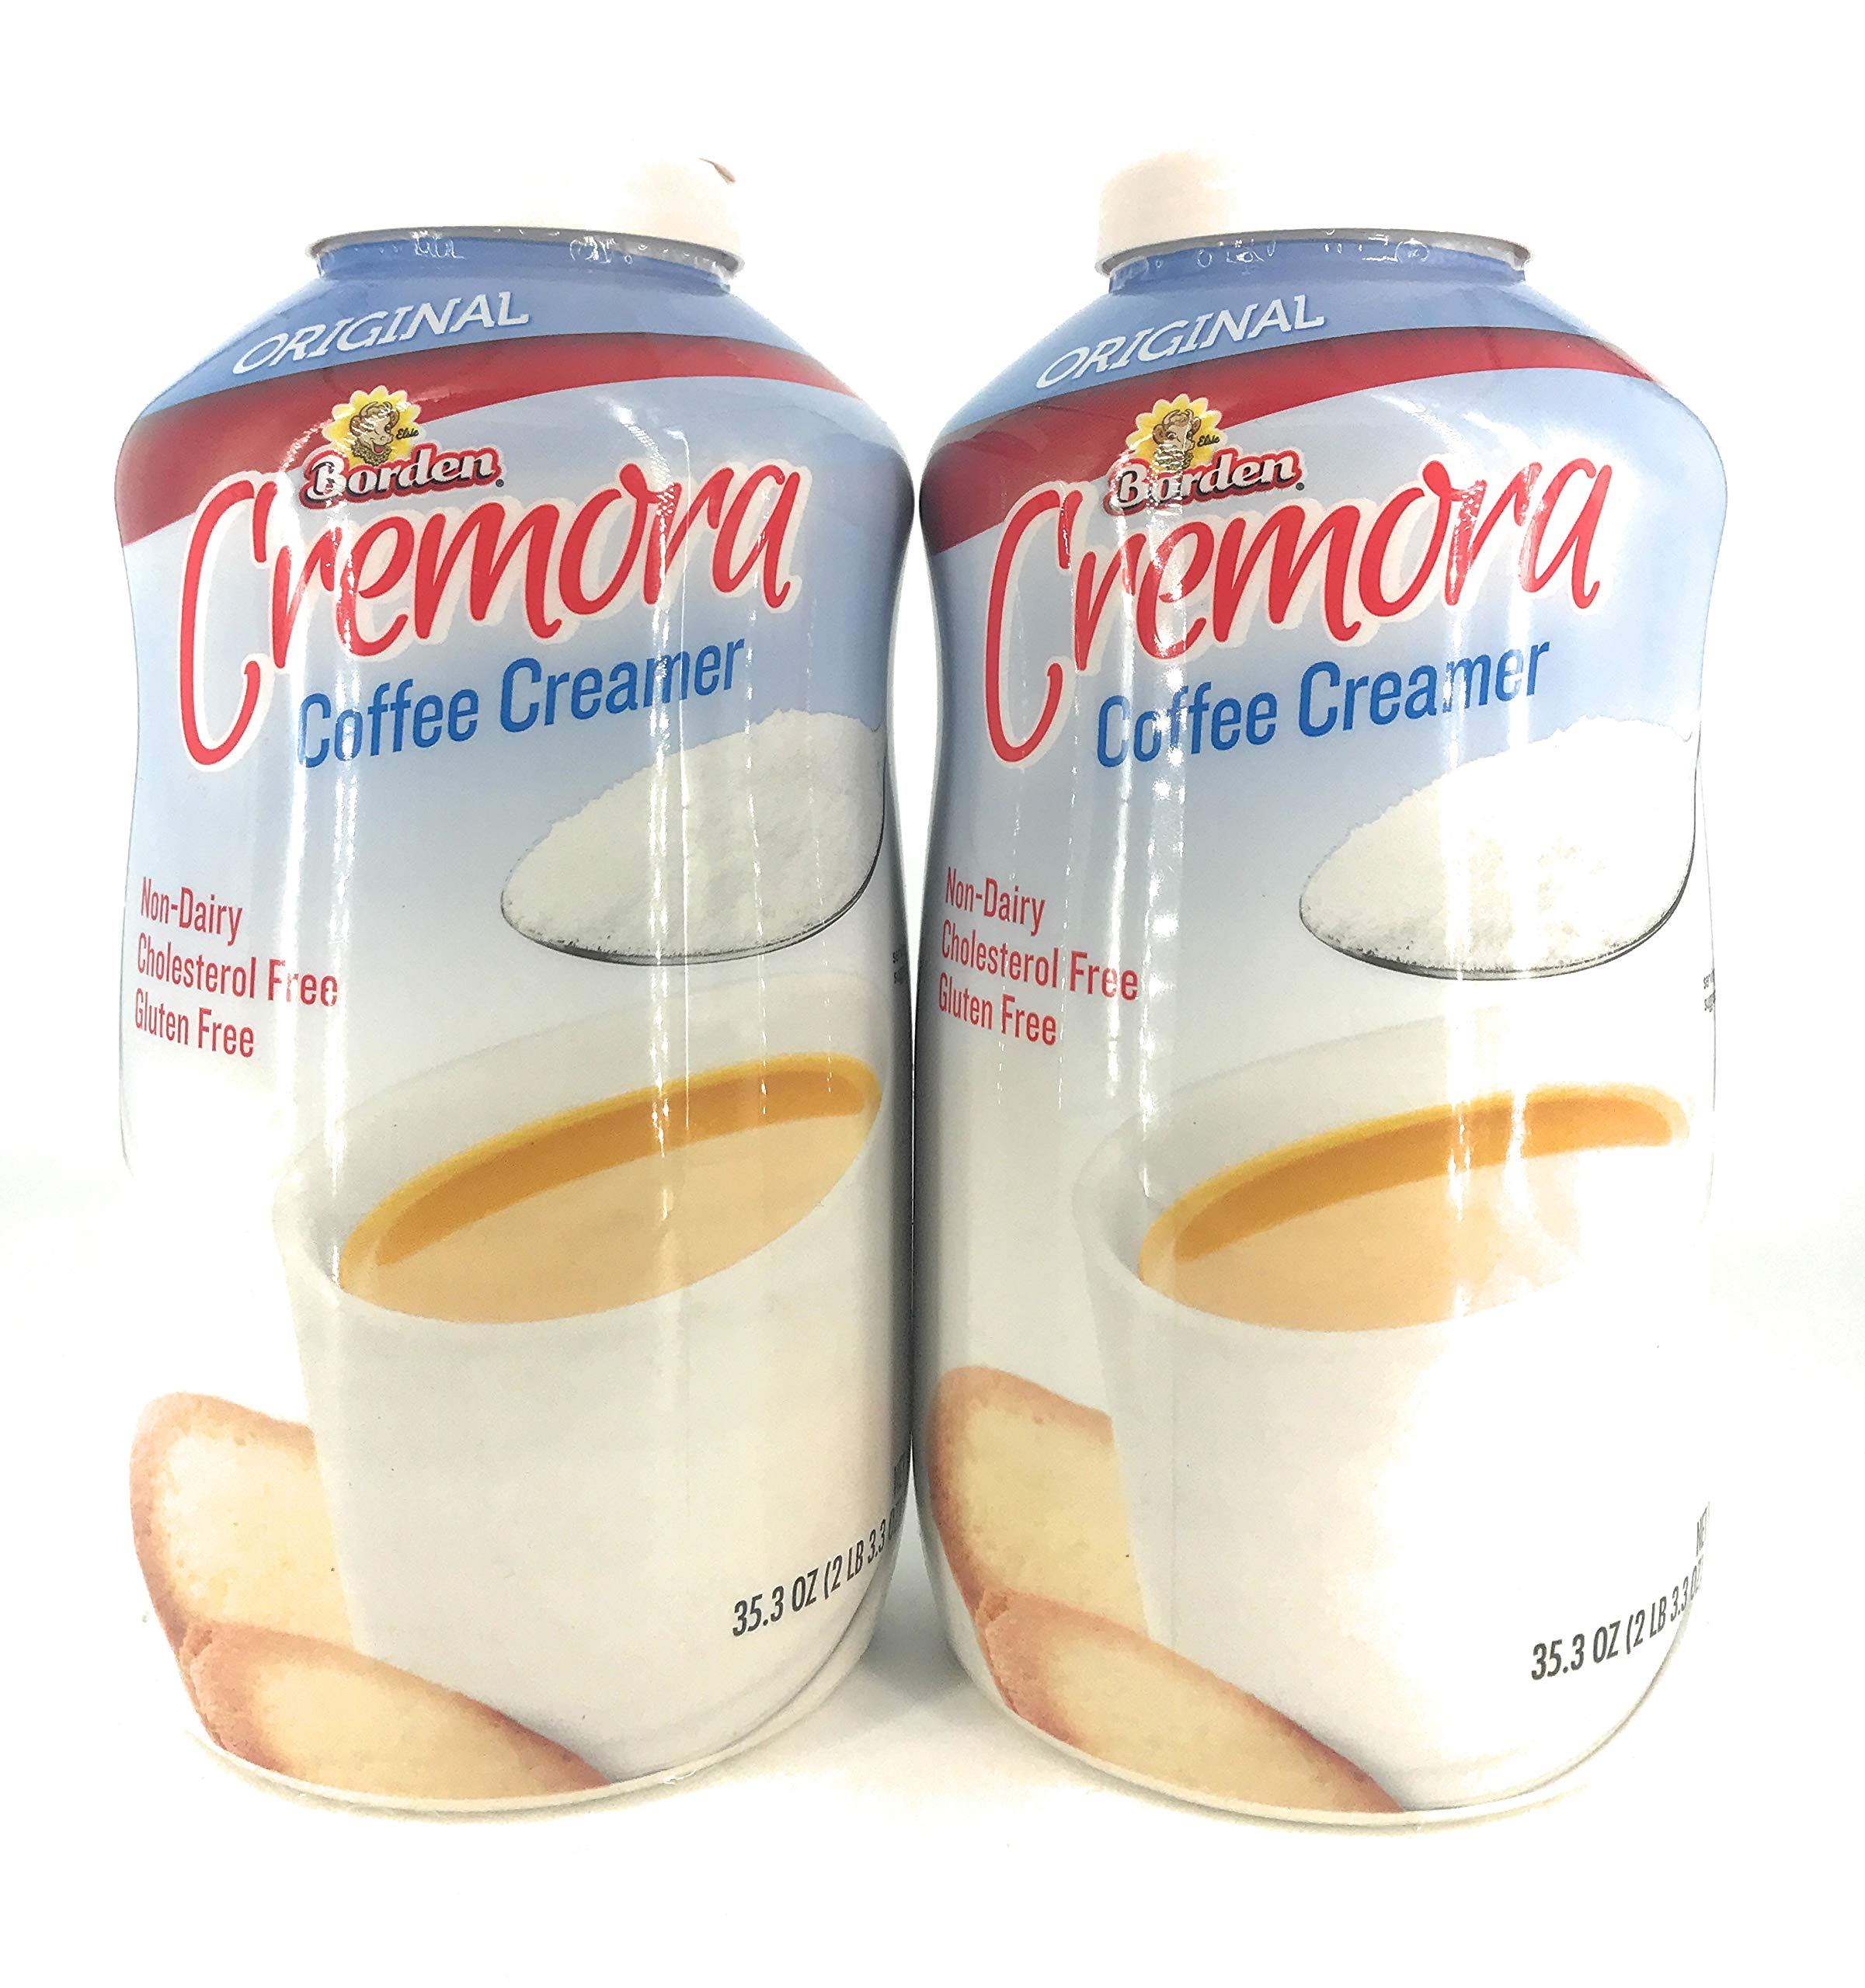 Borden Original Cremora Coffee Creamer, 35.3 oz (Pack of 2) by Borden